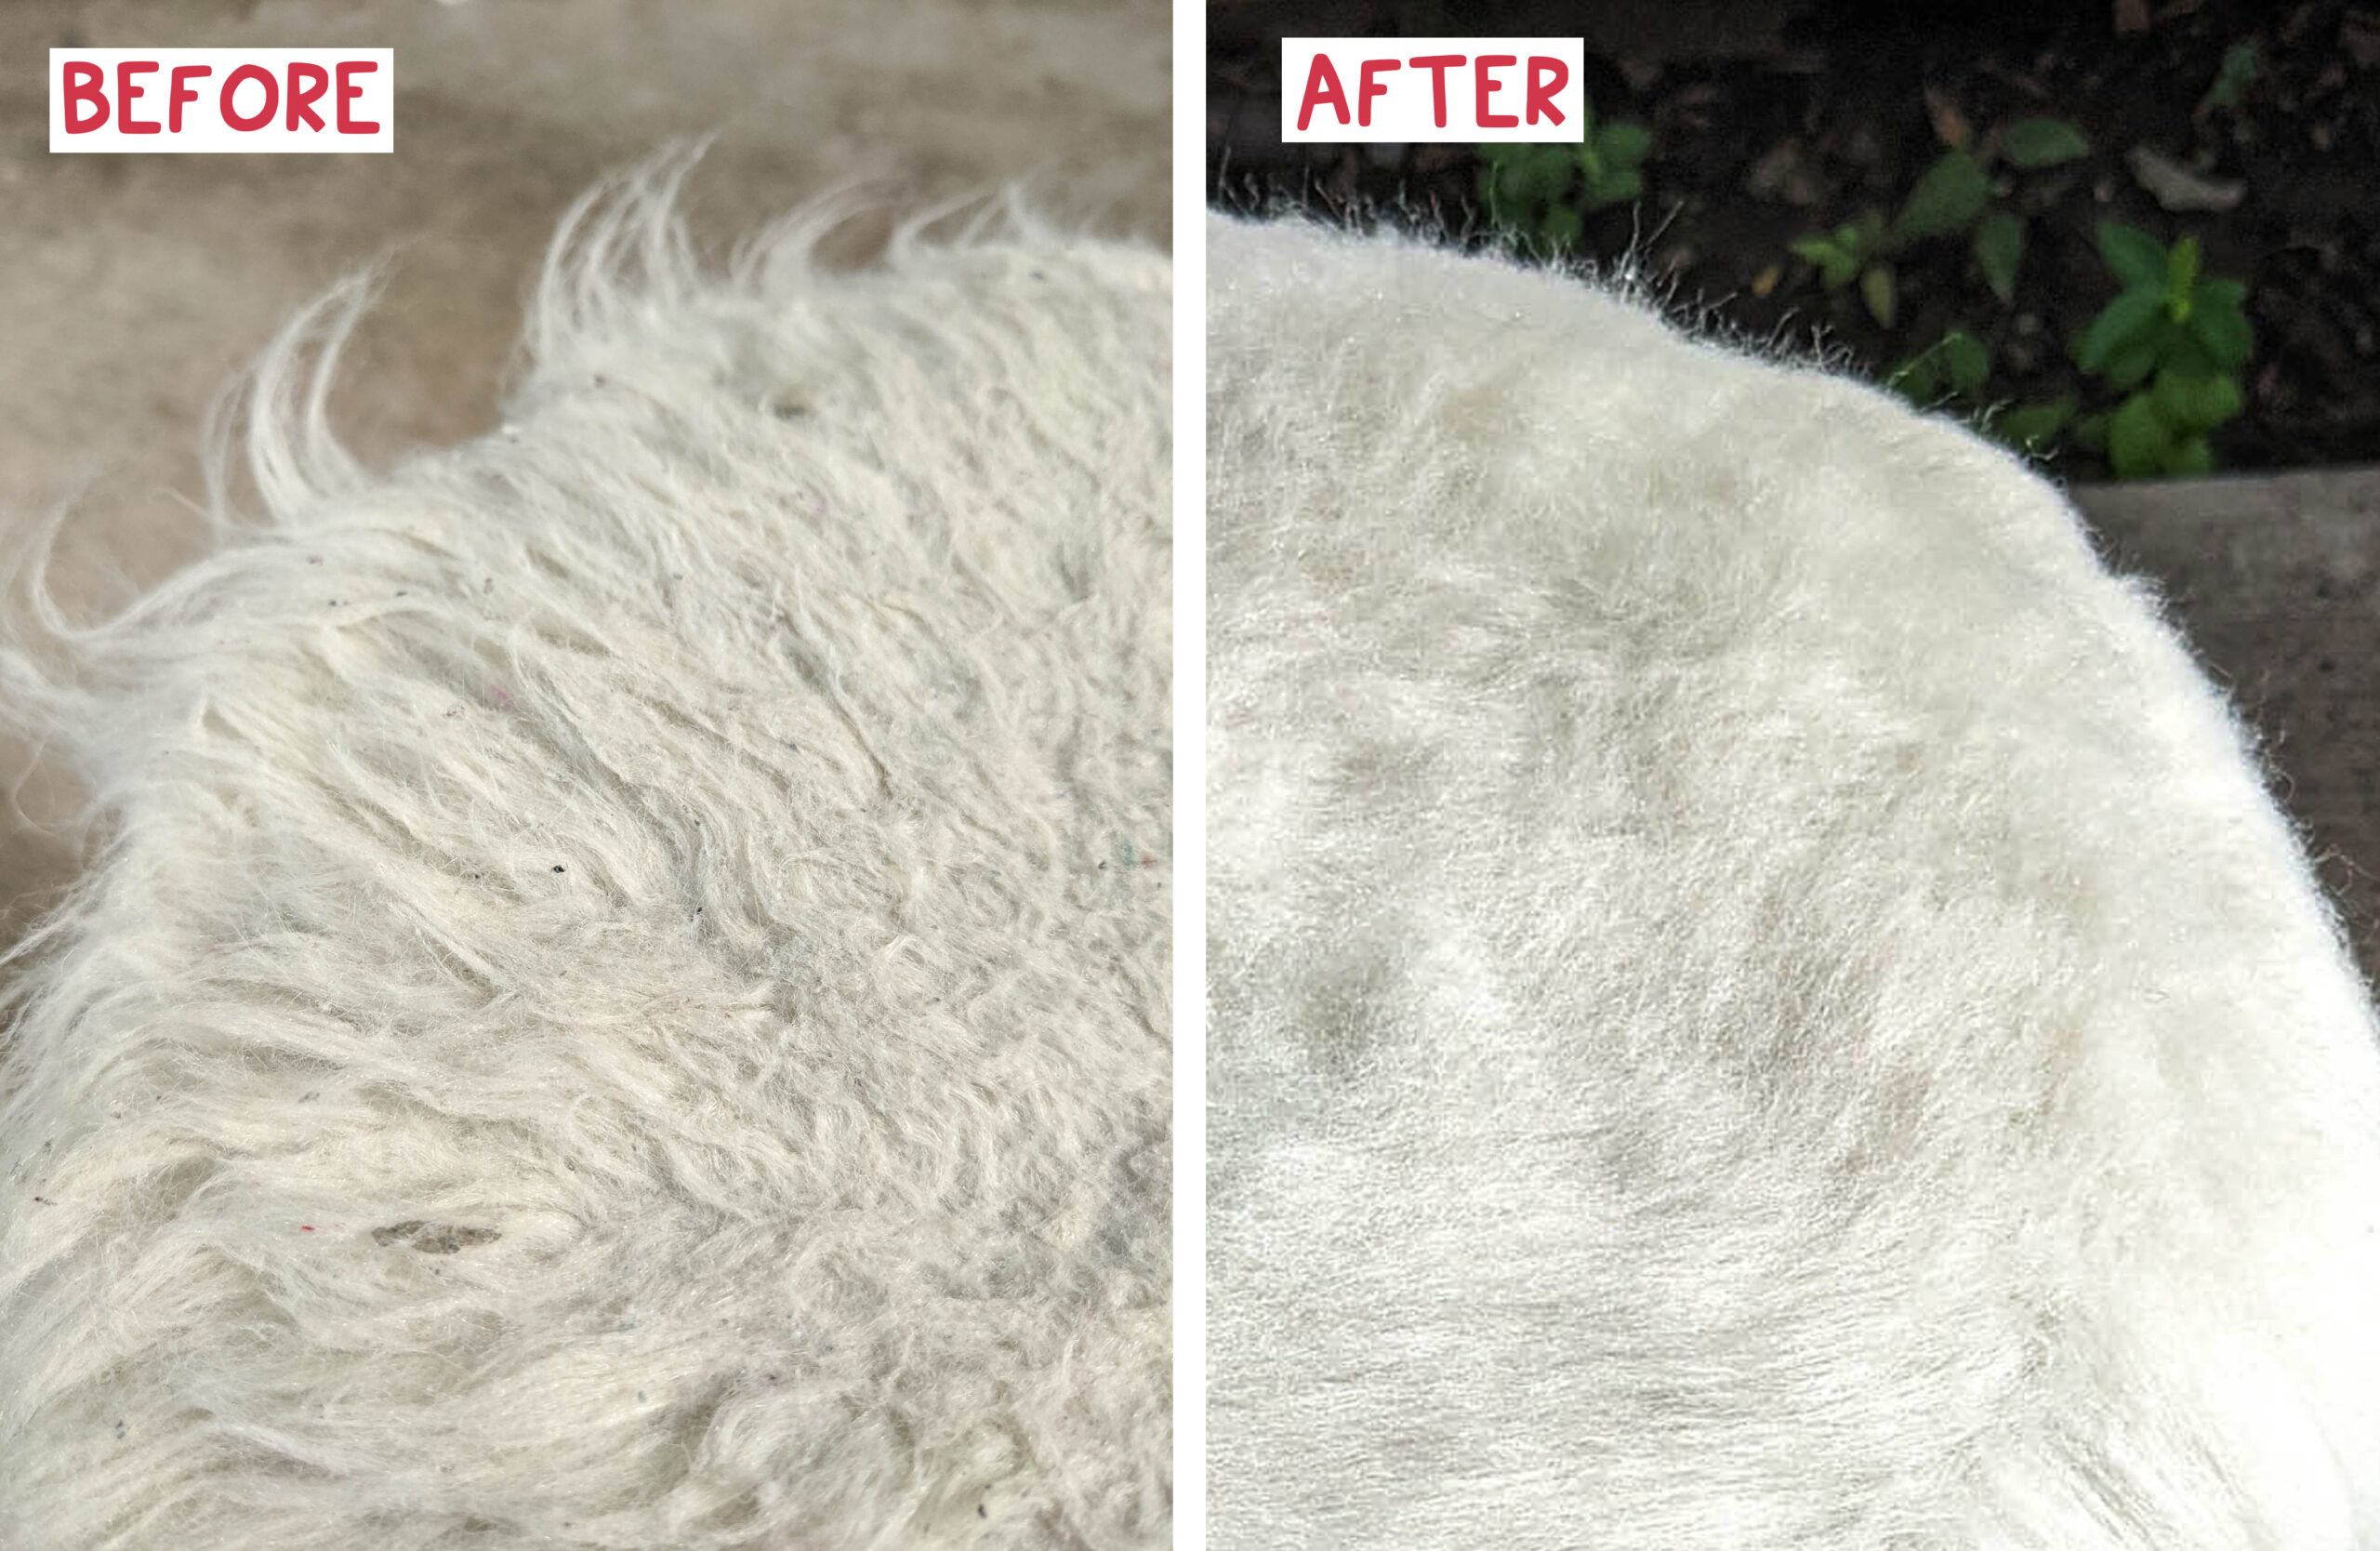 Synthetic fleece is easy to clean with the right tool, here is a before and after shot of two minutes of cleaning.